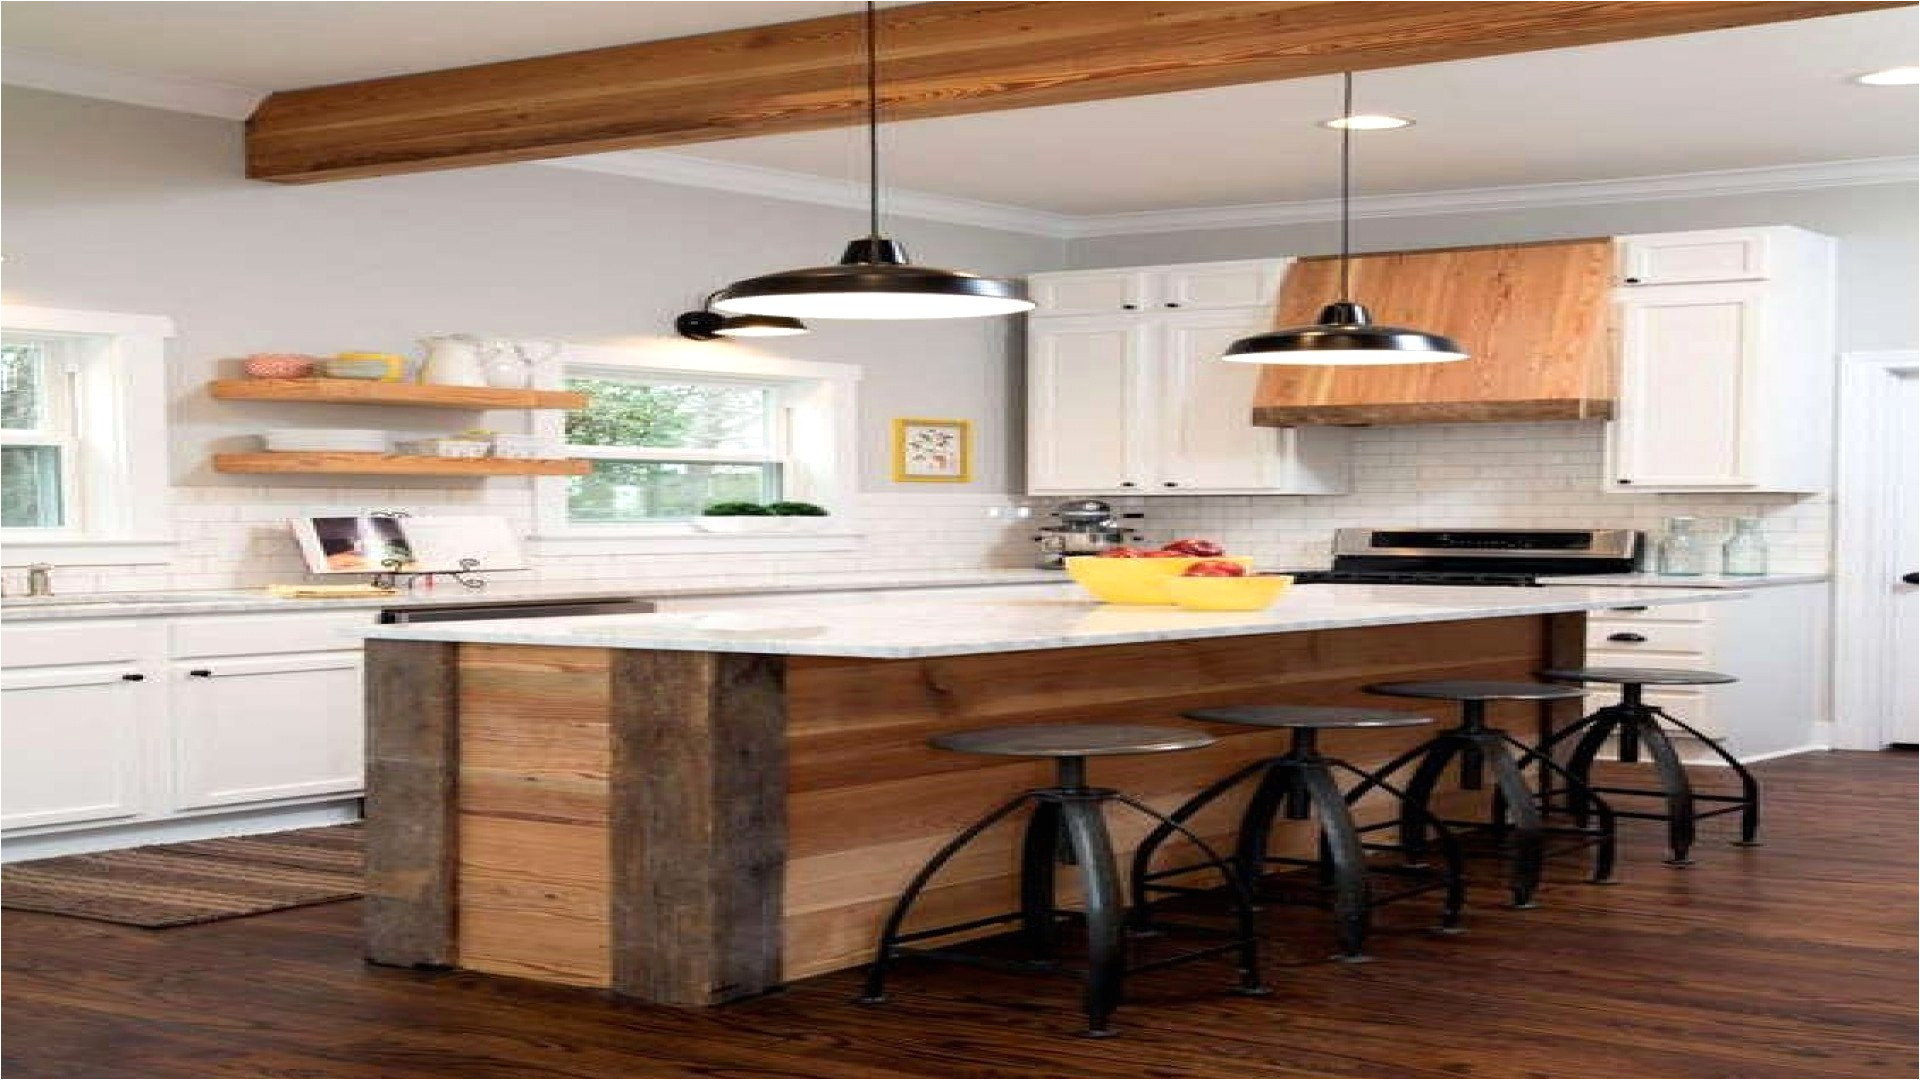 ikea kitchen pantry cabinet best kitchen cabinet freestanding pe from free standing kitchen sink cabinet image source facebook learn com